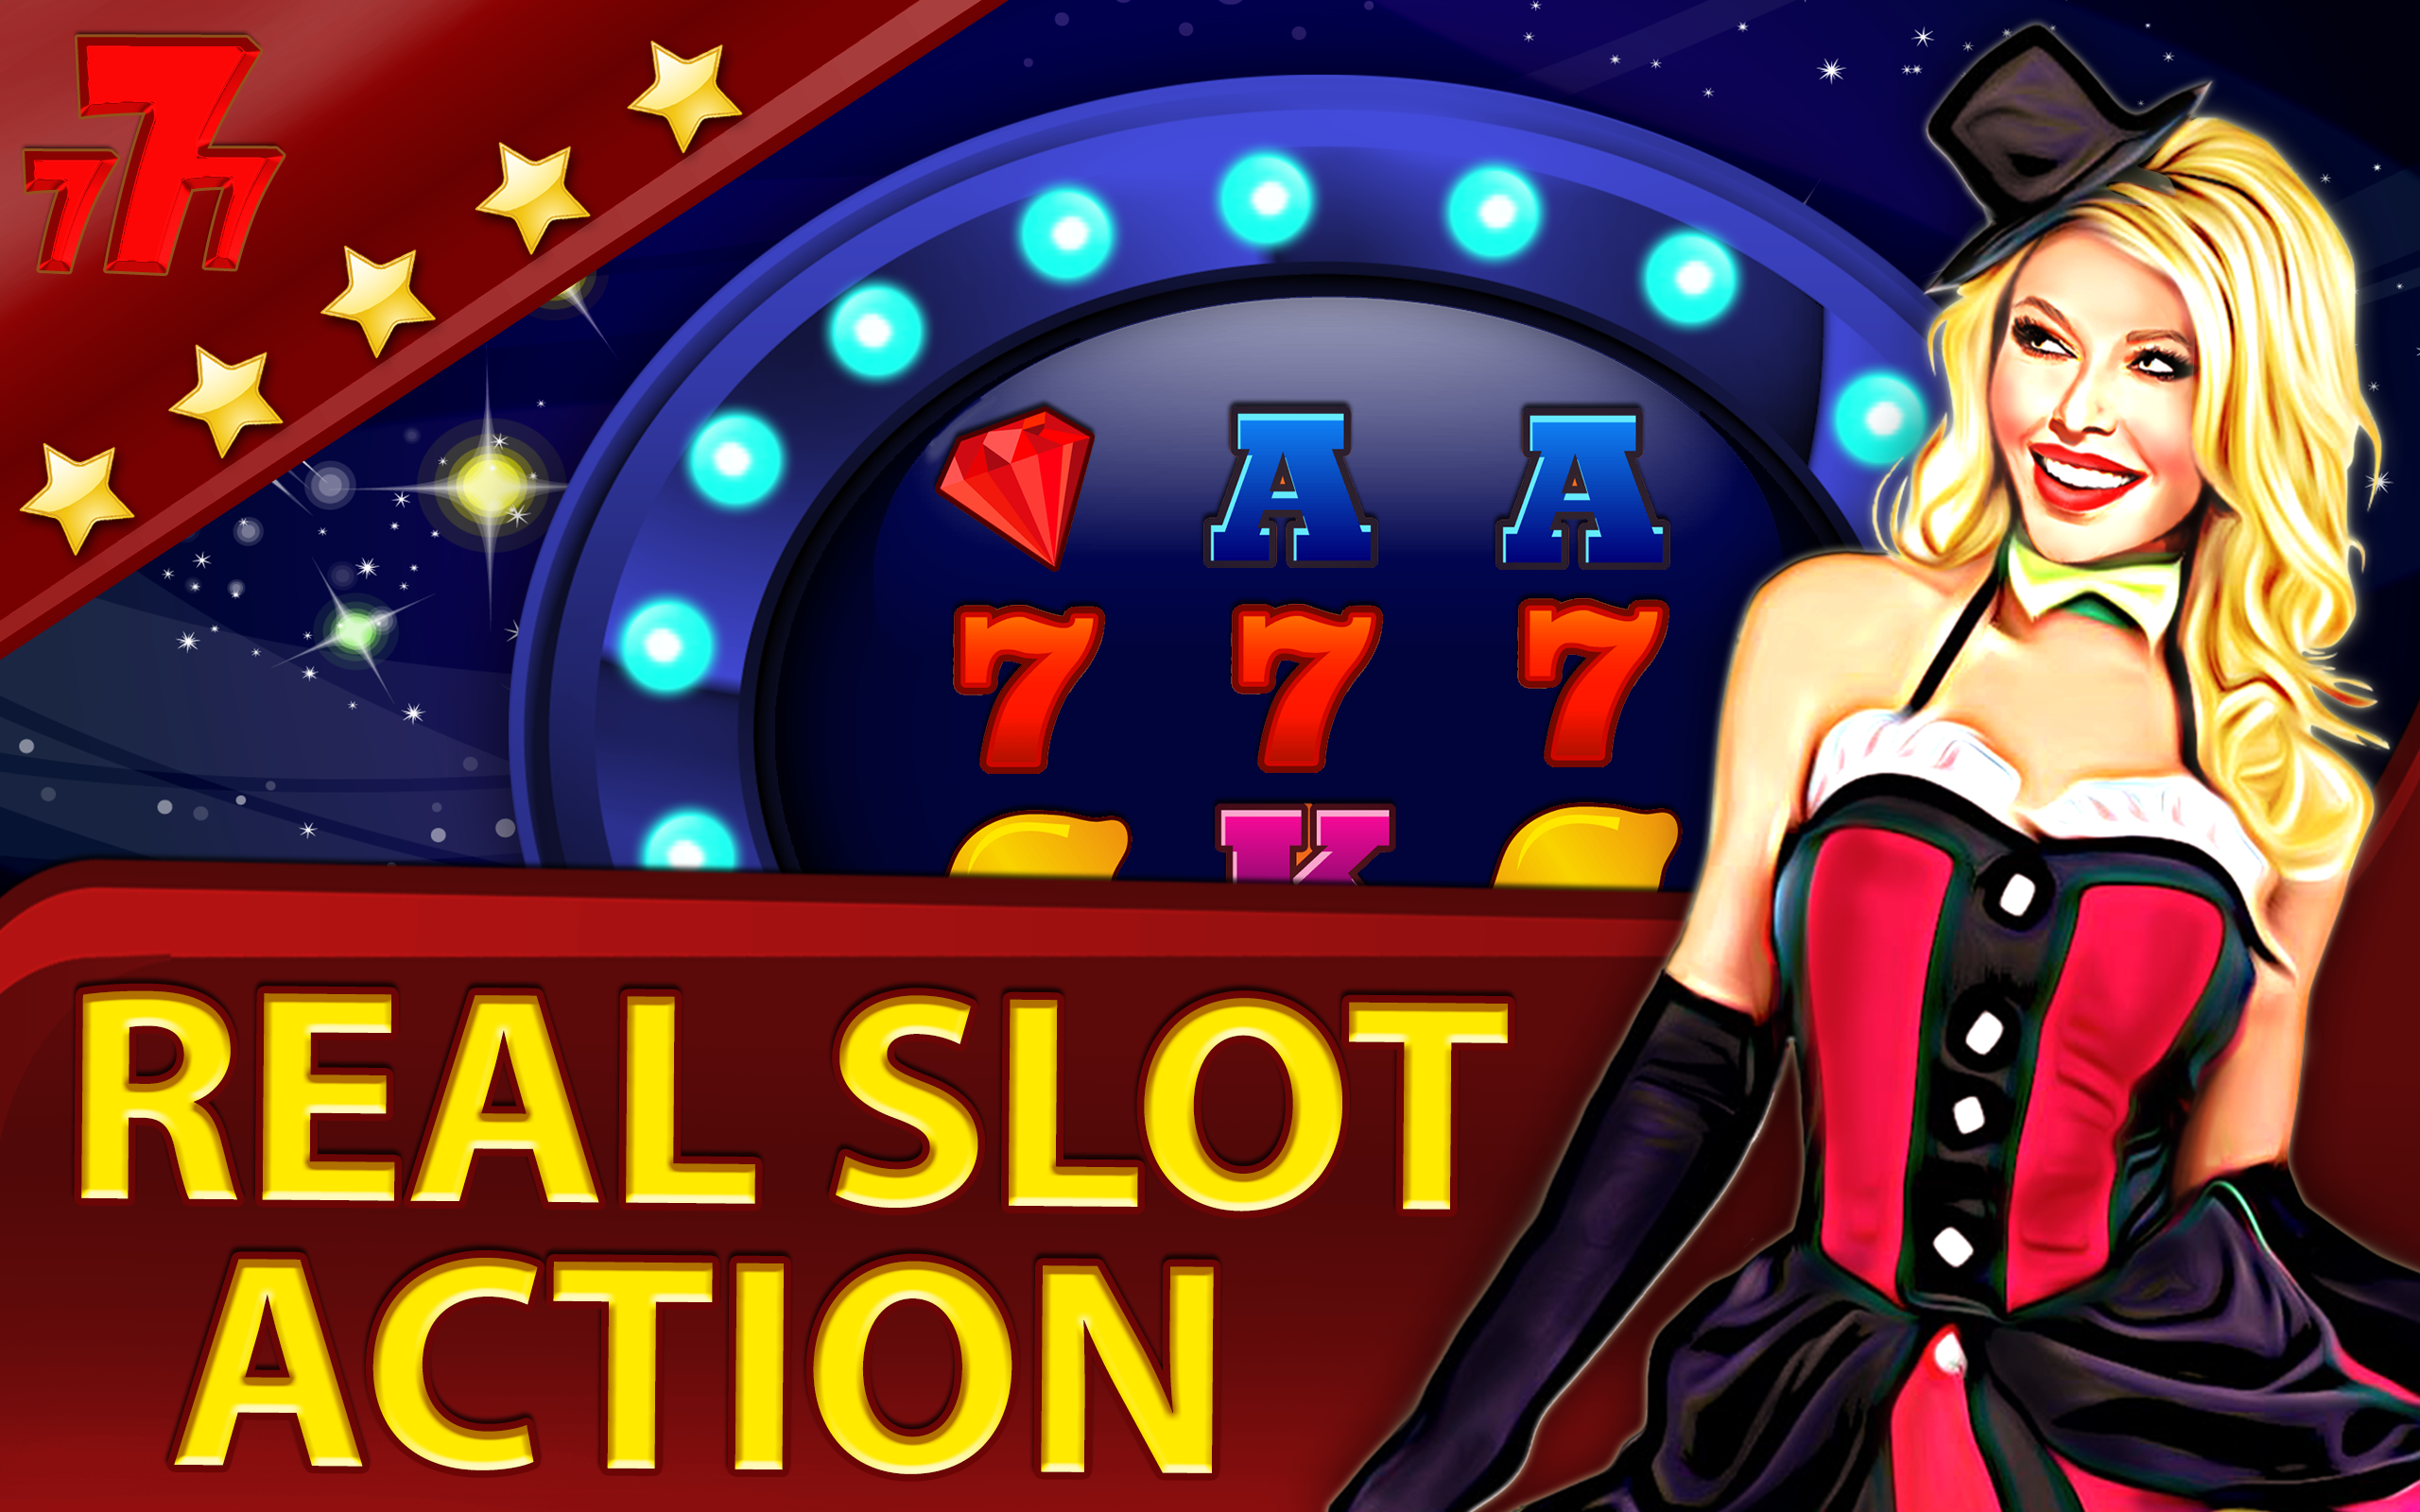 Pay by phone slots